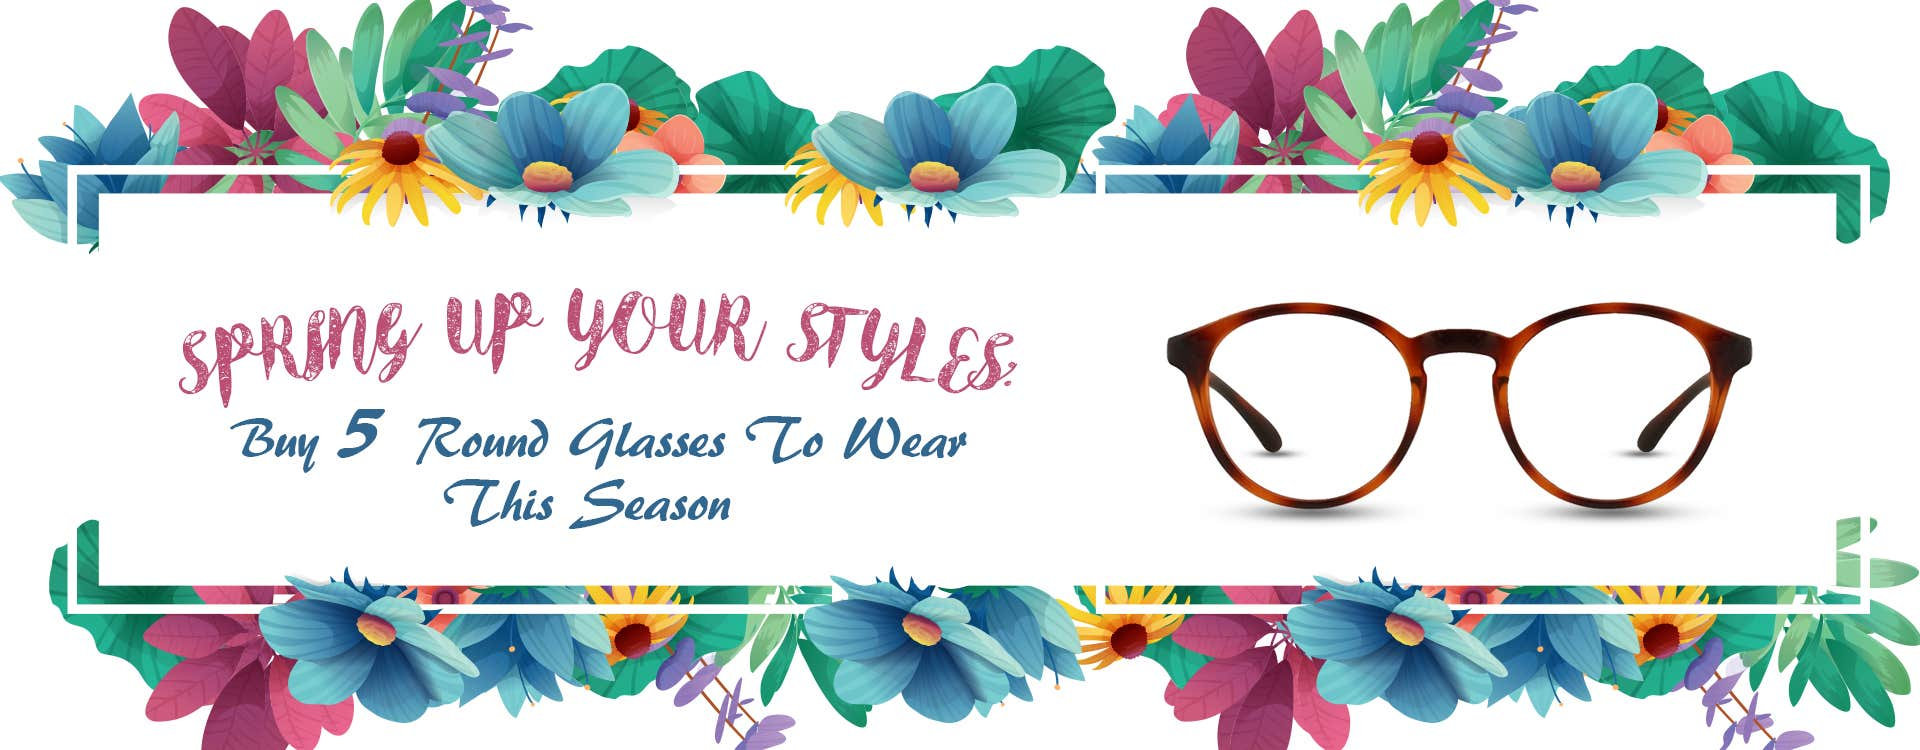 Spring Up Your Styles: Buy 5 Round Glasses To Wear This Season